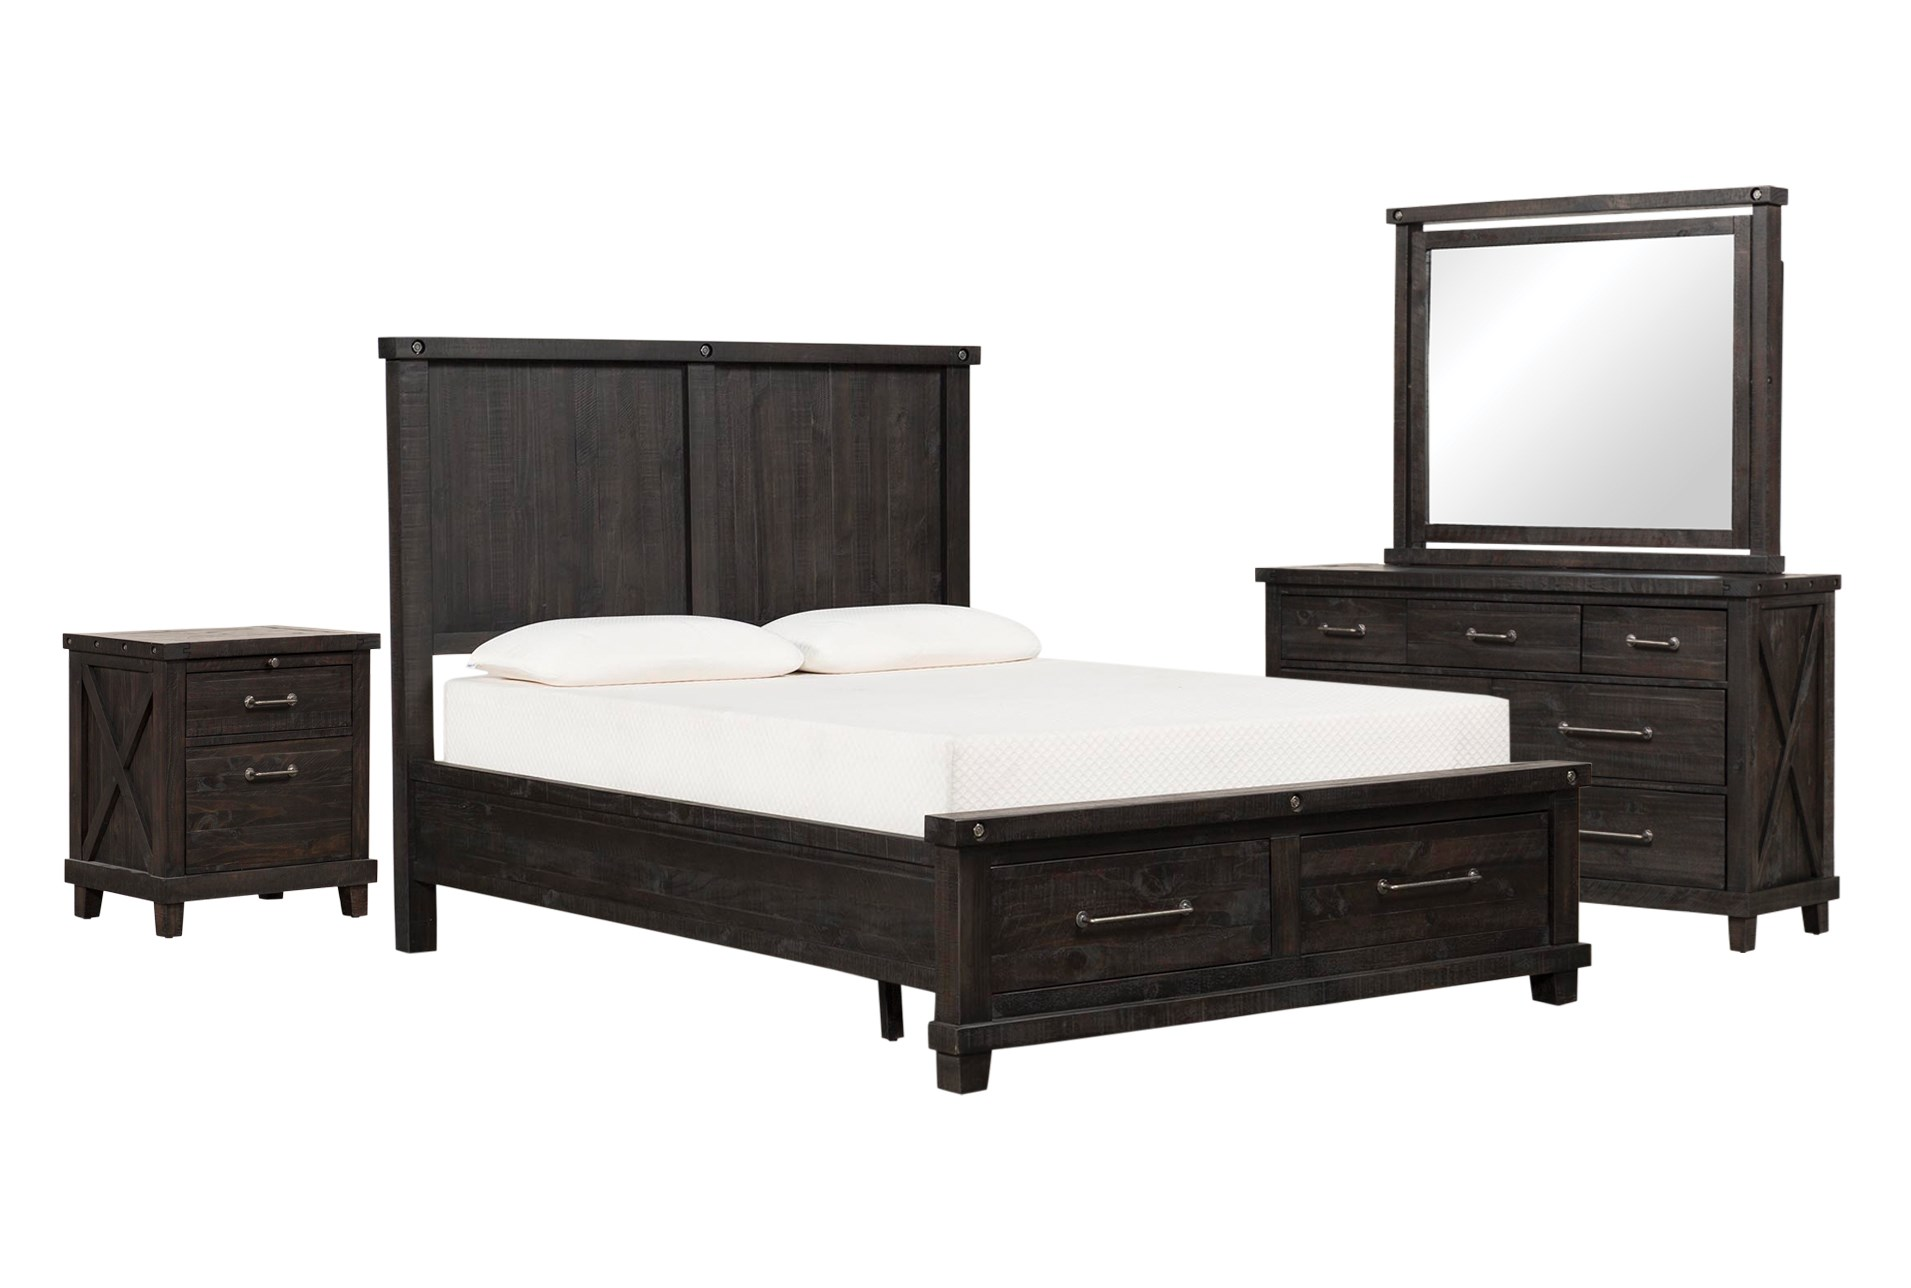 Jaxon Eastern King Storage 4 Piece Bedroom Set